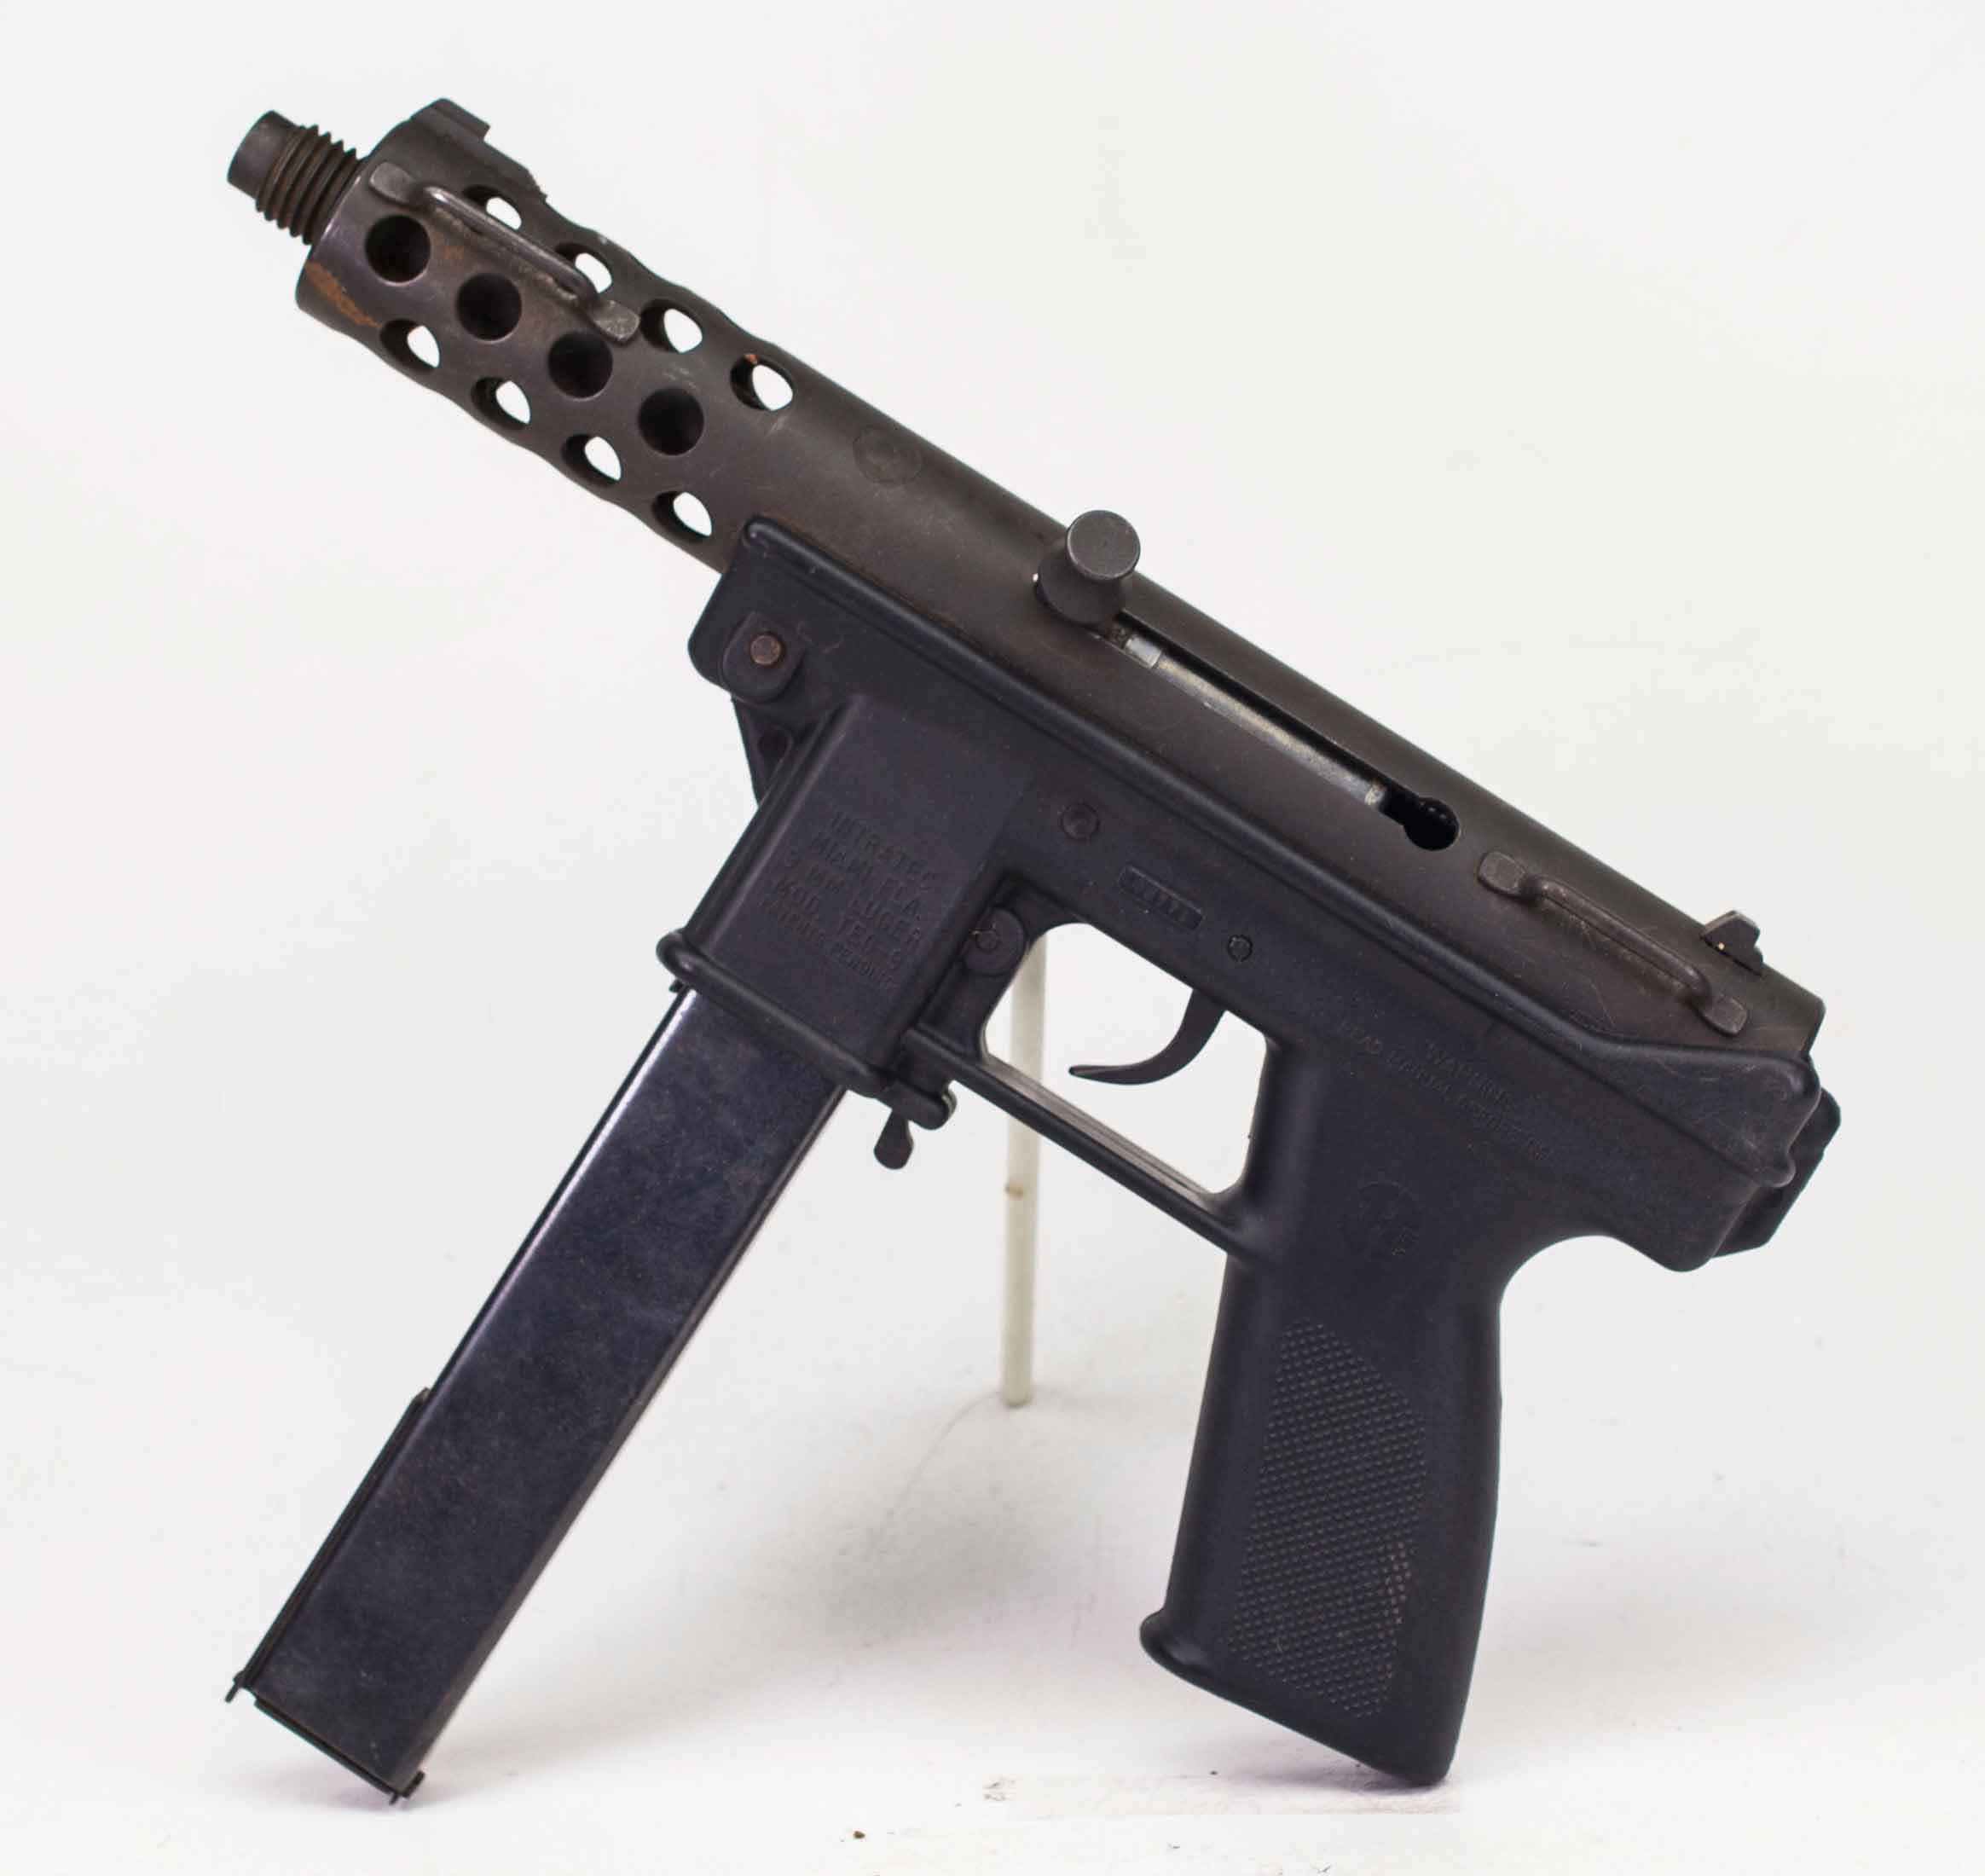 INTRATEC TEC-9 (Auction ID: 10970214, End Time : Mar  23